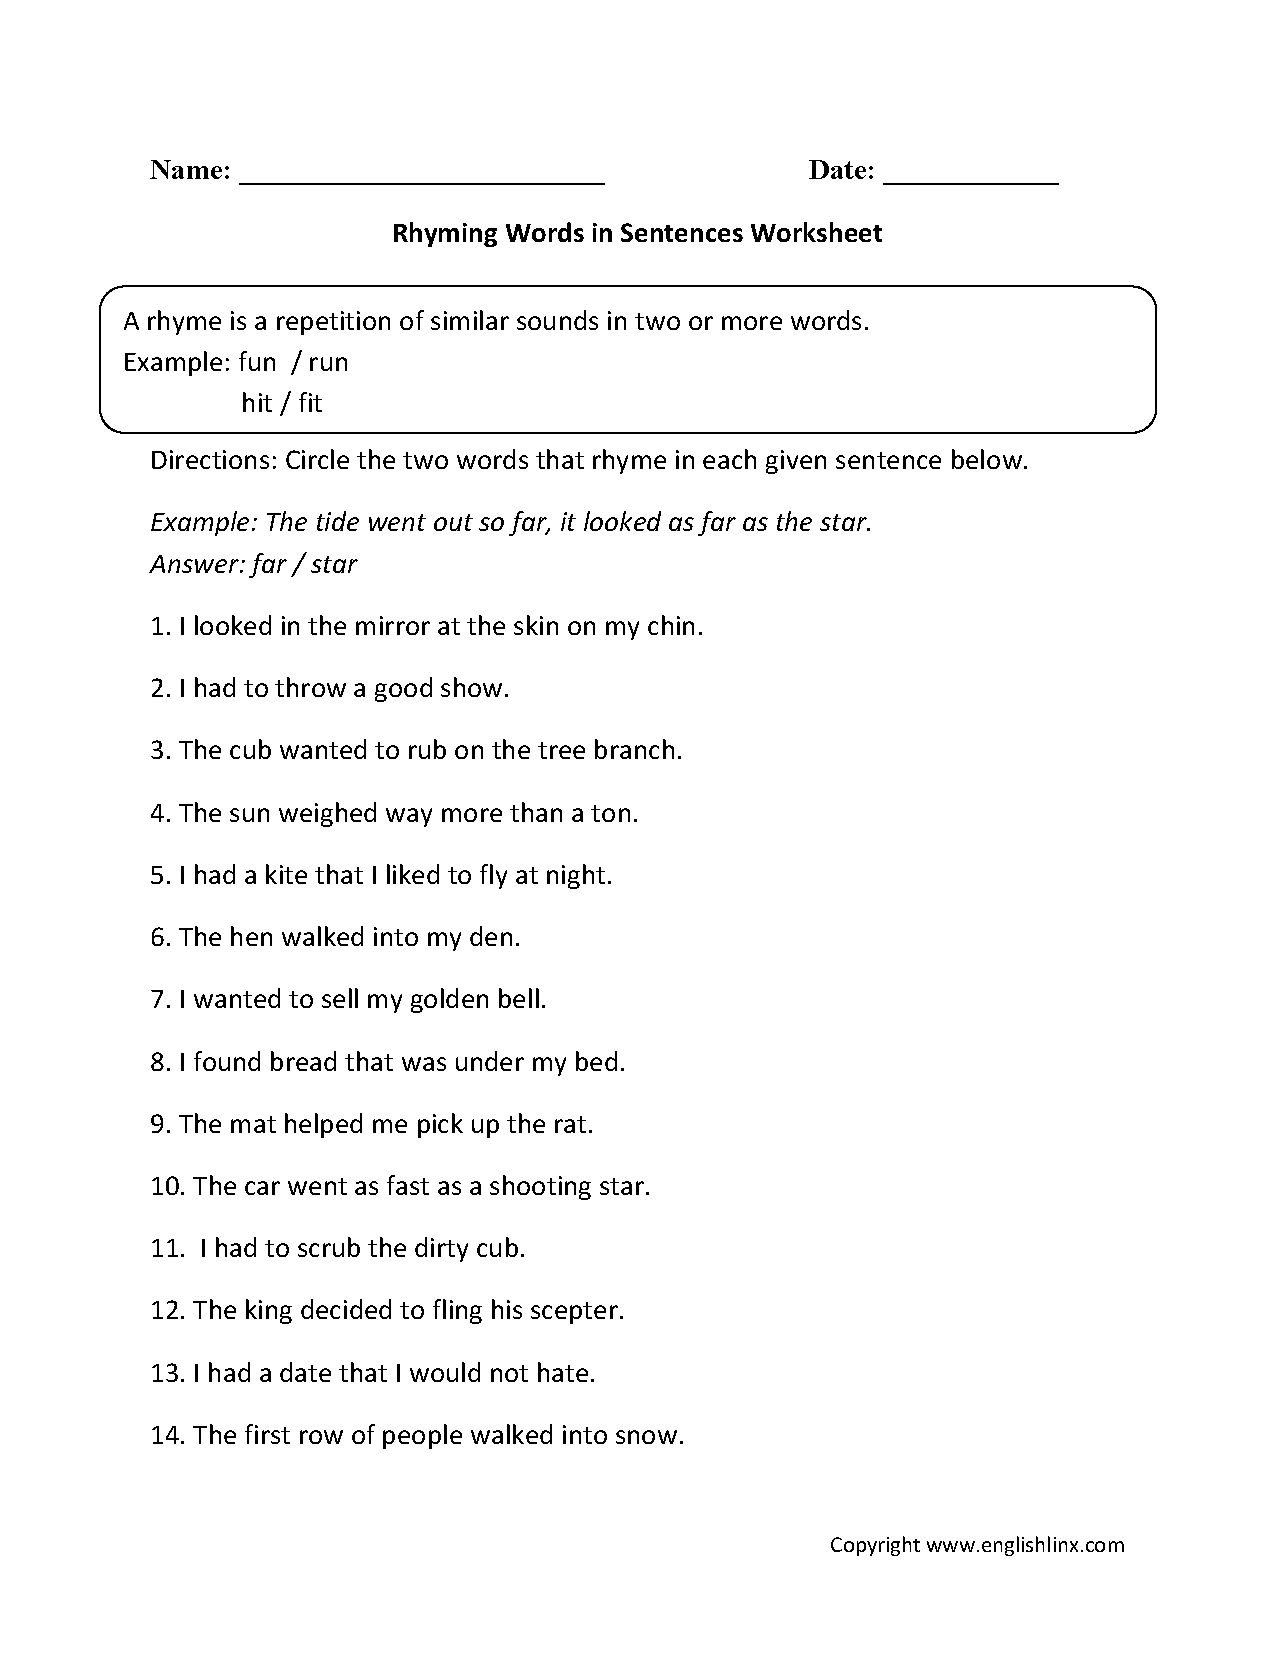 worksheet Worksheet Rhyming Words rhyming worksheets words in sentences worksheet worksheets